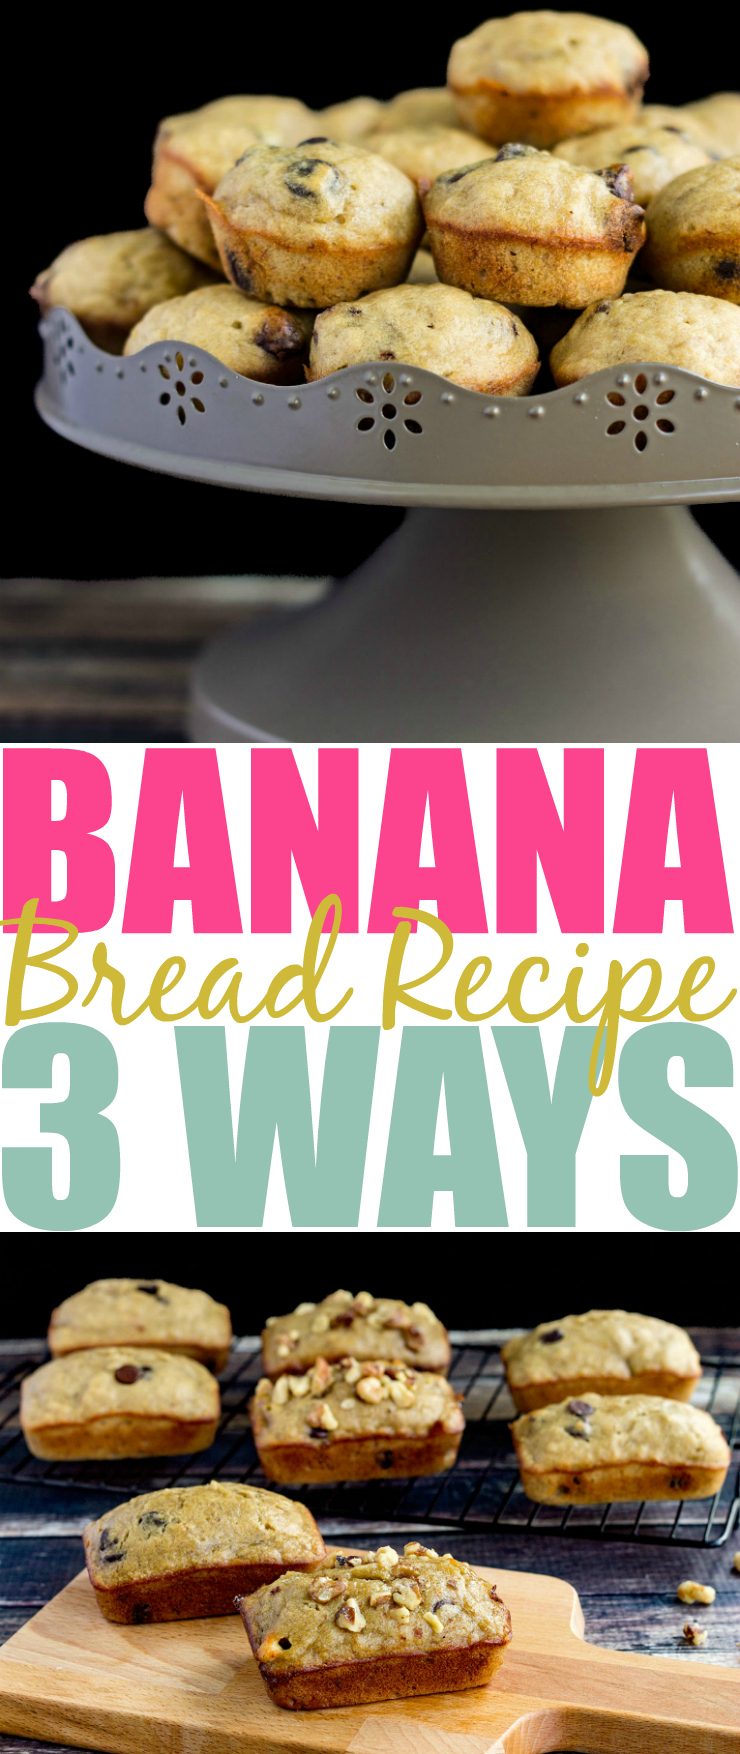 Worlds Best Banana Bread Recipe Pinterest